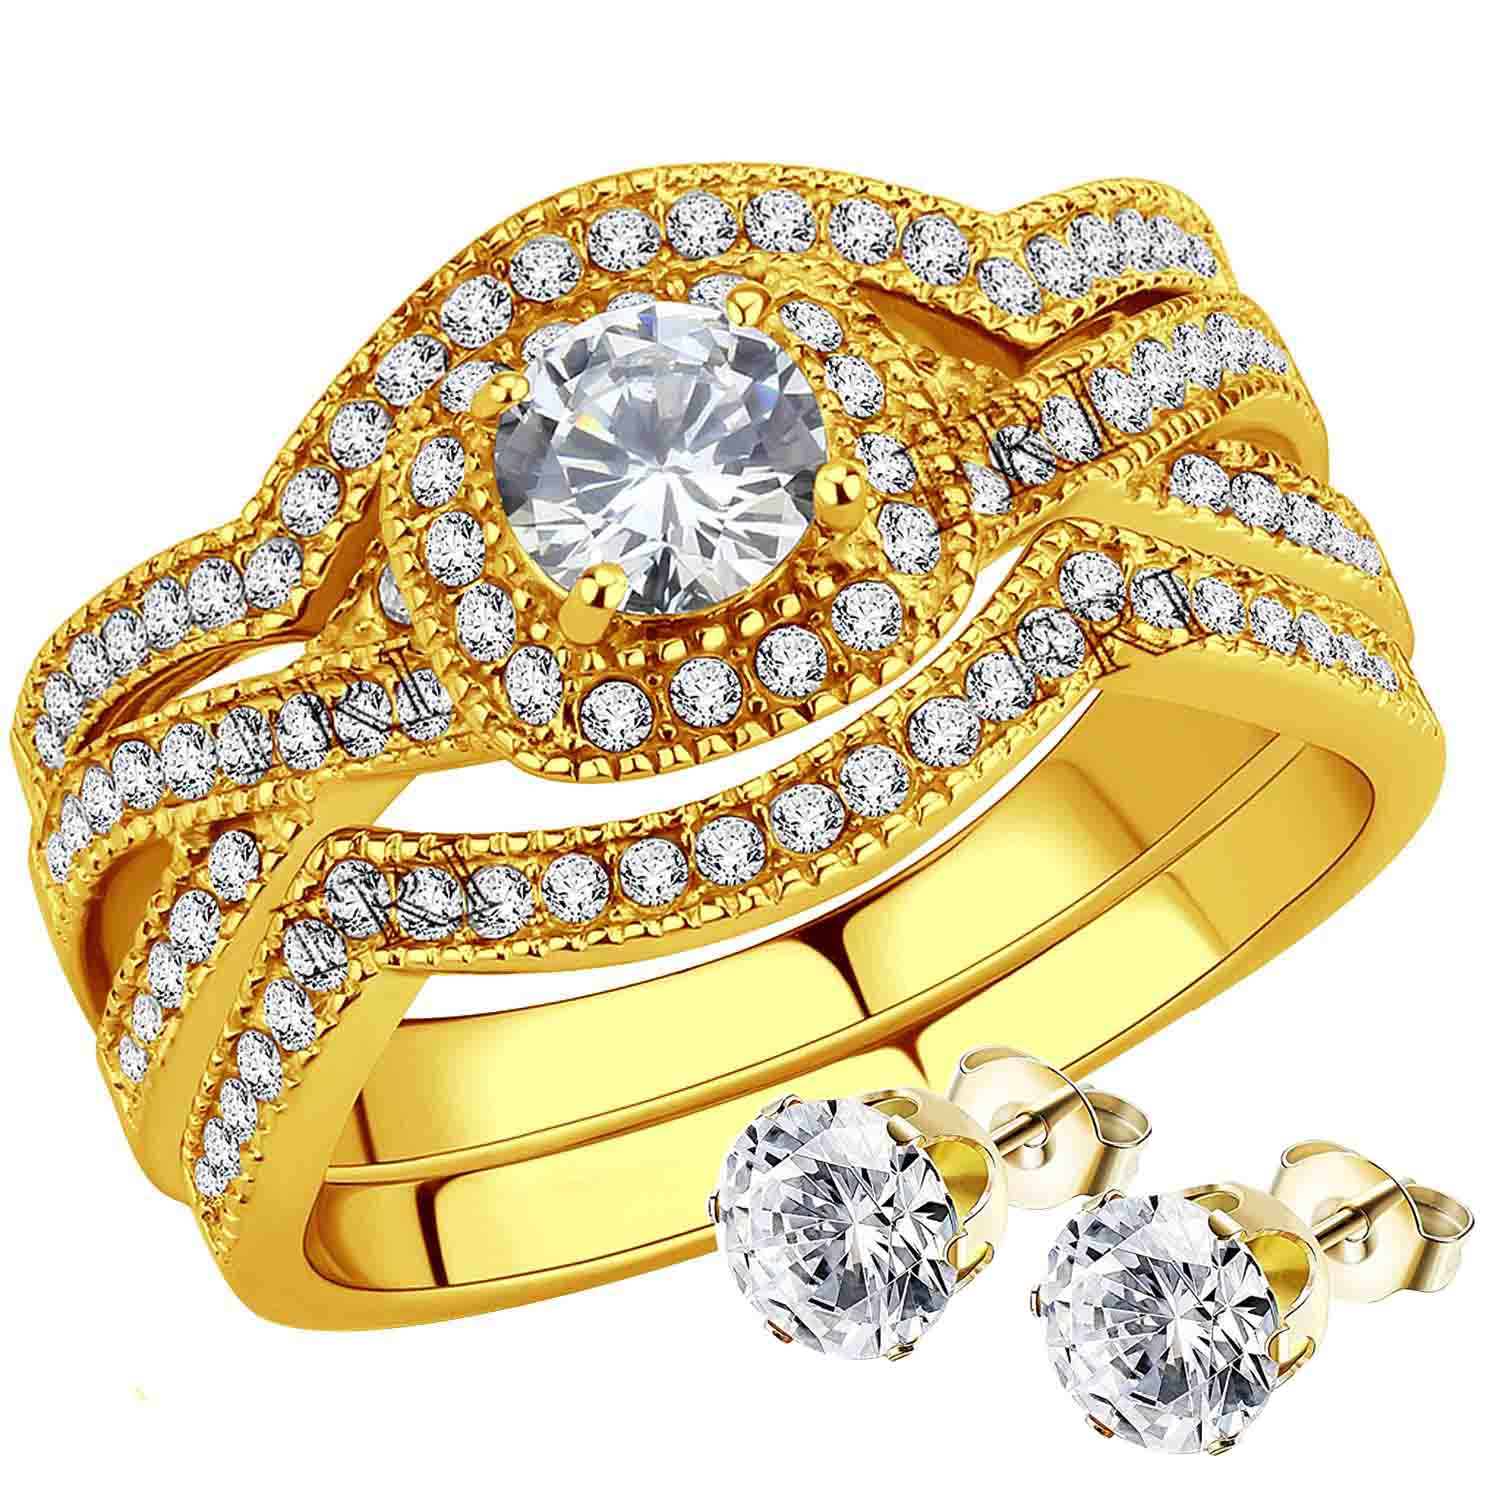 Stainless-Steel-Women-039-s-Infinity-Wedding-Ring-Set-Halo-Round-Cut-Cubic-Zirconia thumbnail 10